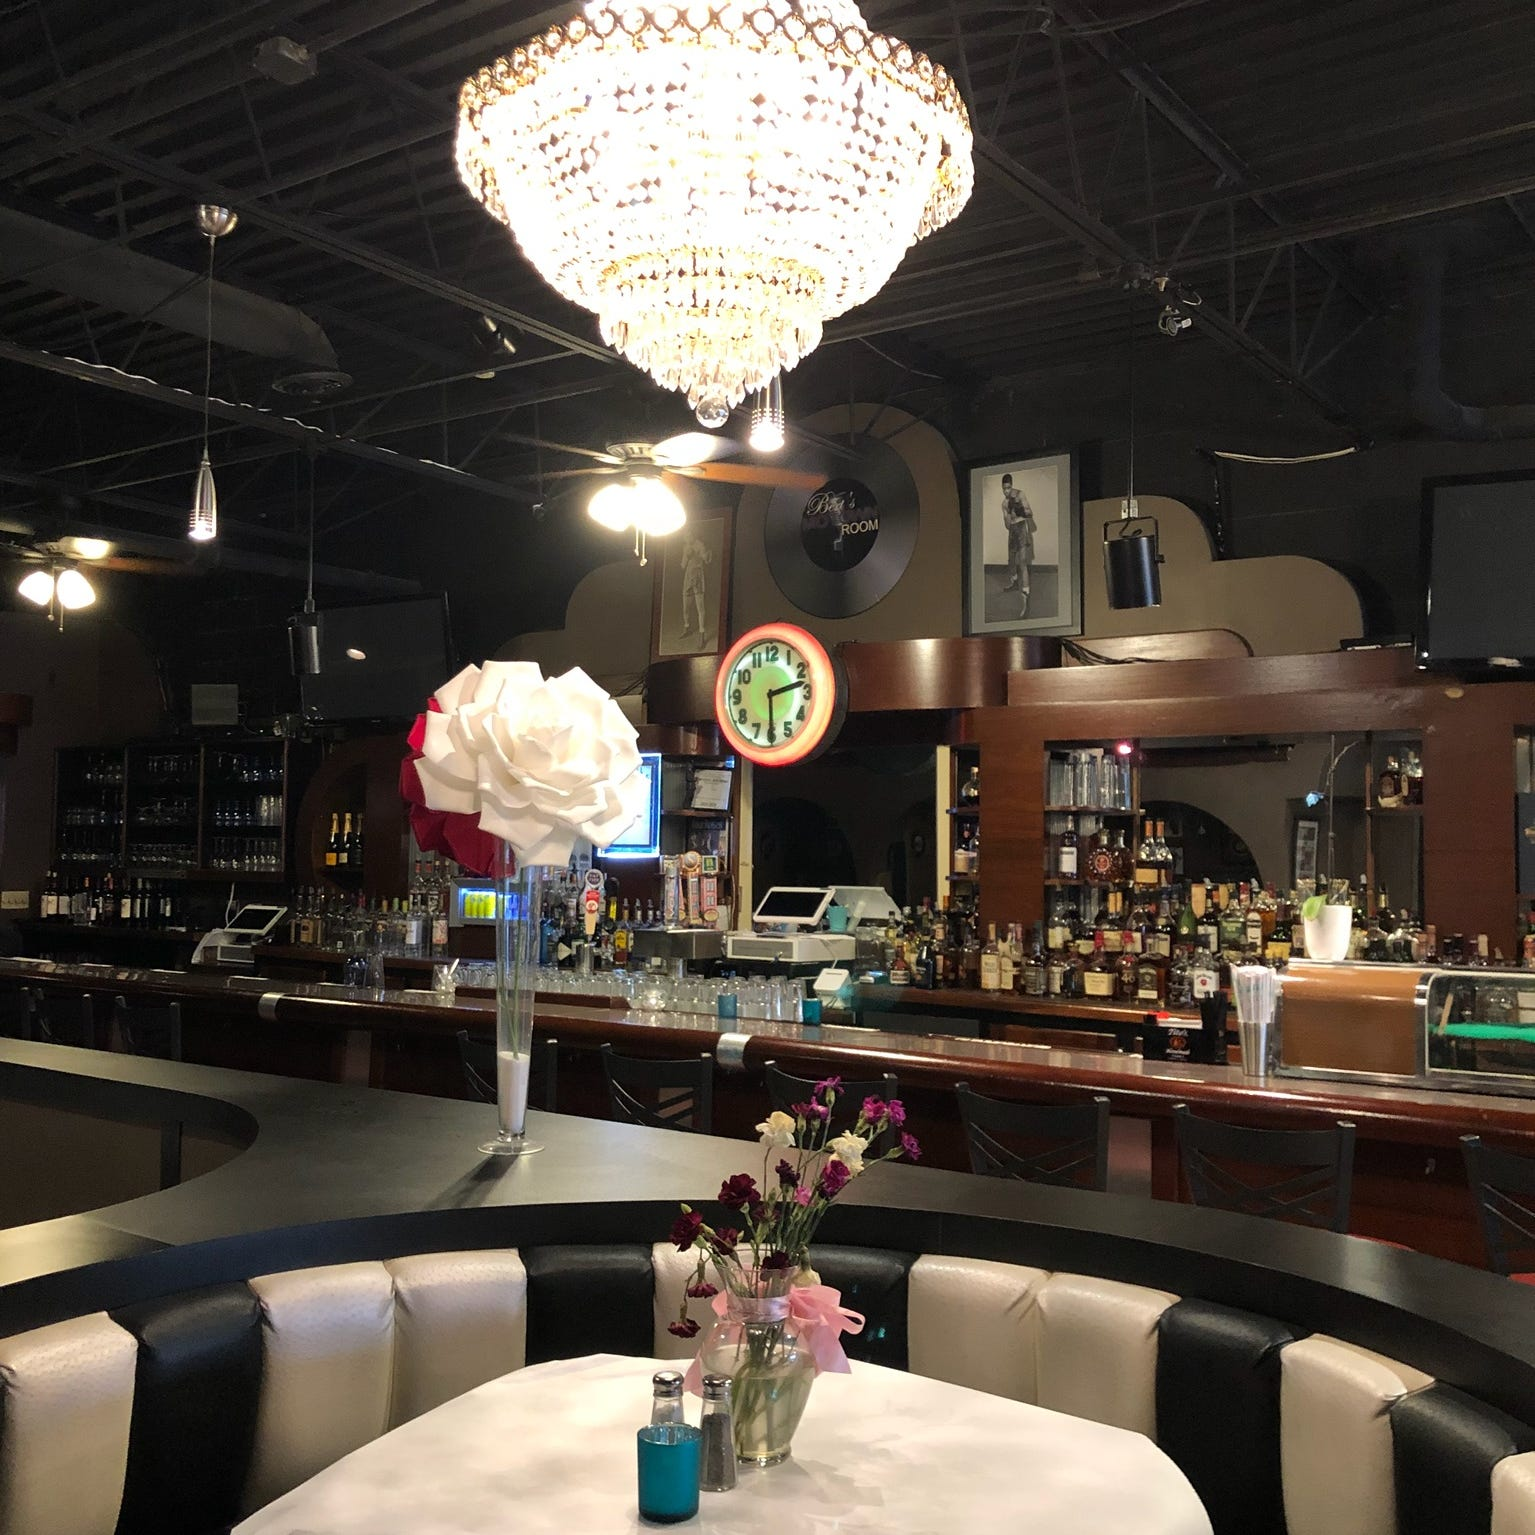 The Motown Bistro and Oyster Bar is a Motown-themed restaurant inside Bert's Marketplace in Eastern Market.